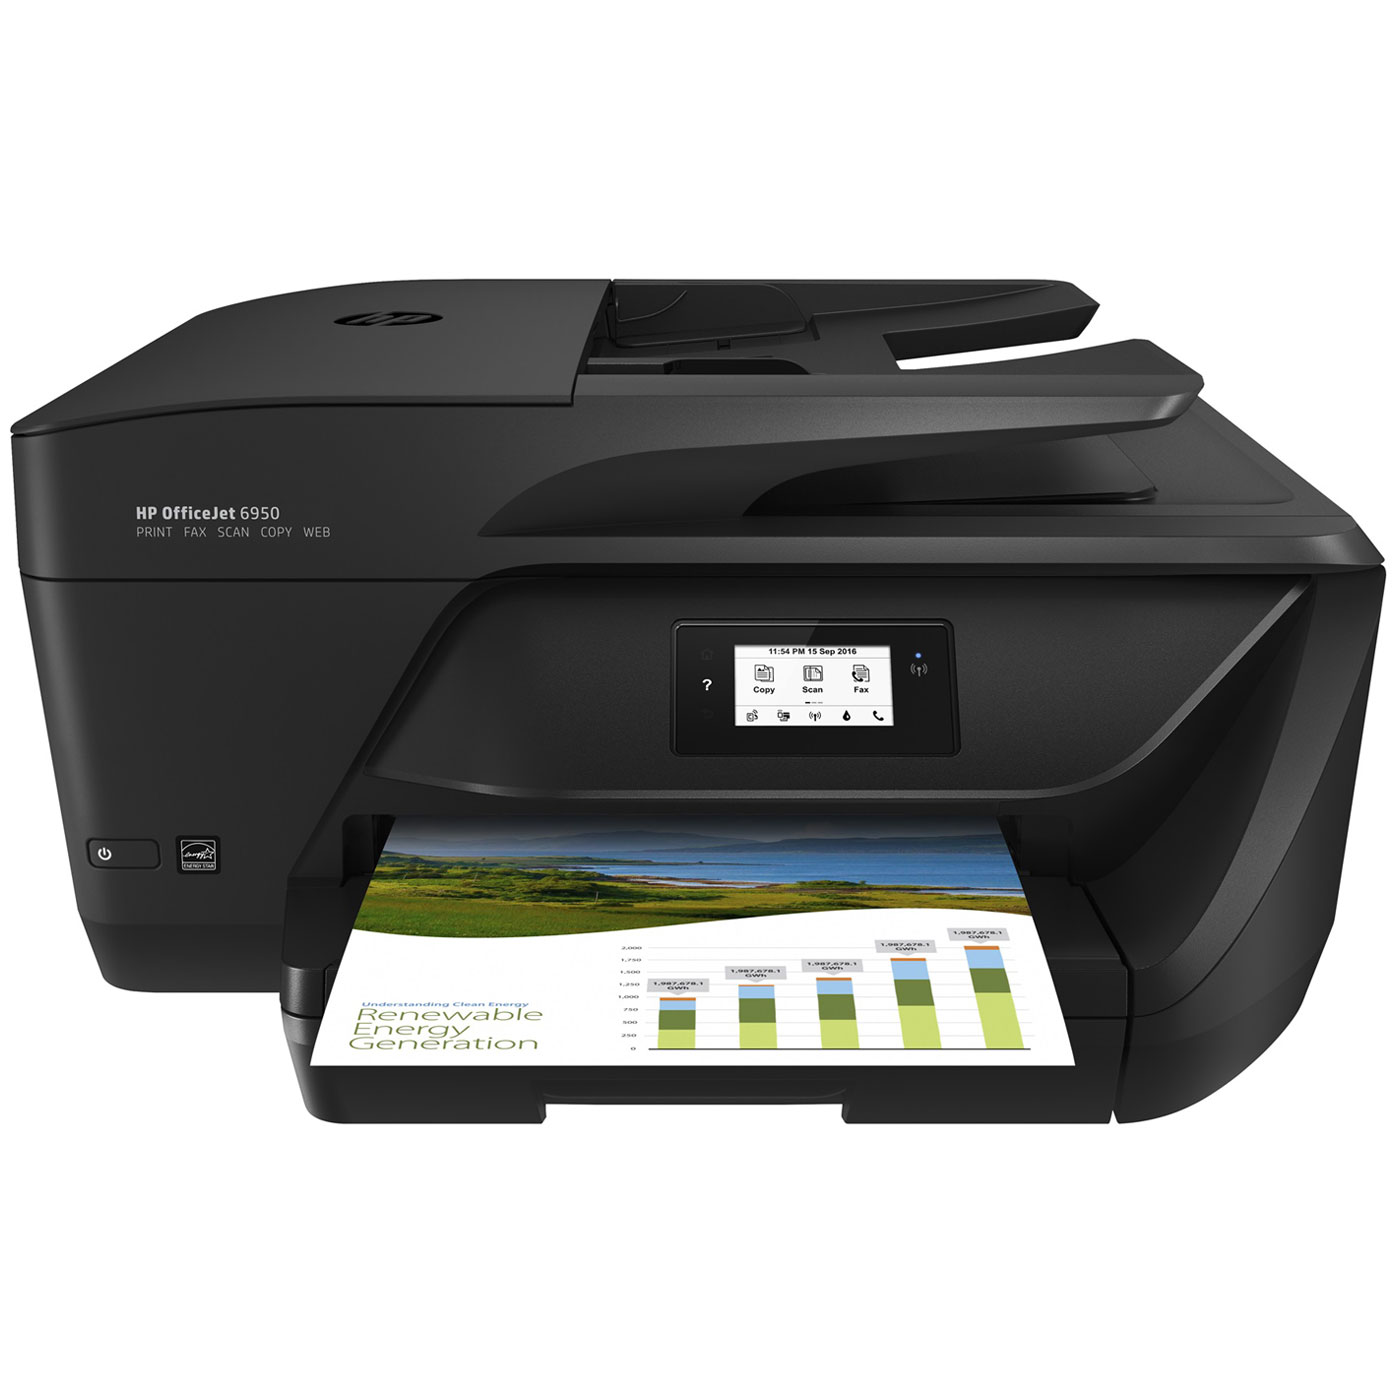 hp officejet 6950 imprimante multifonction hp sur. Black Bedroom Furniture Sets. Home Design Ideas